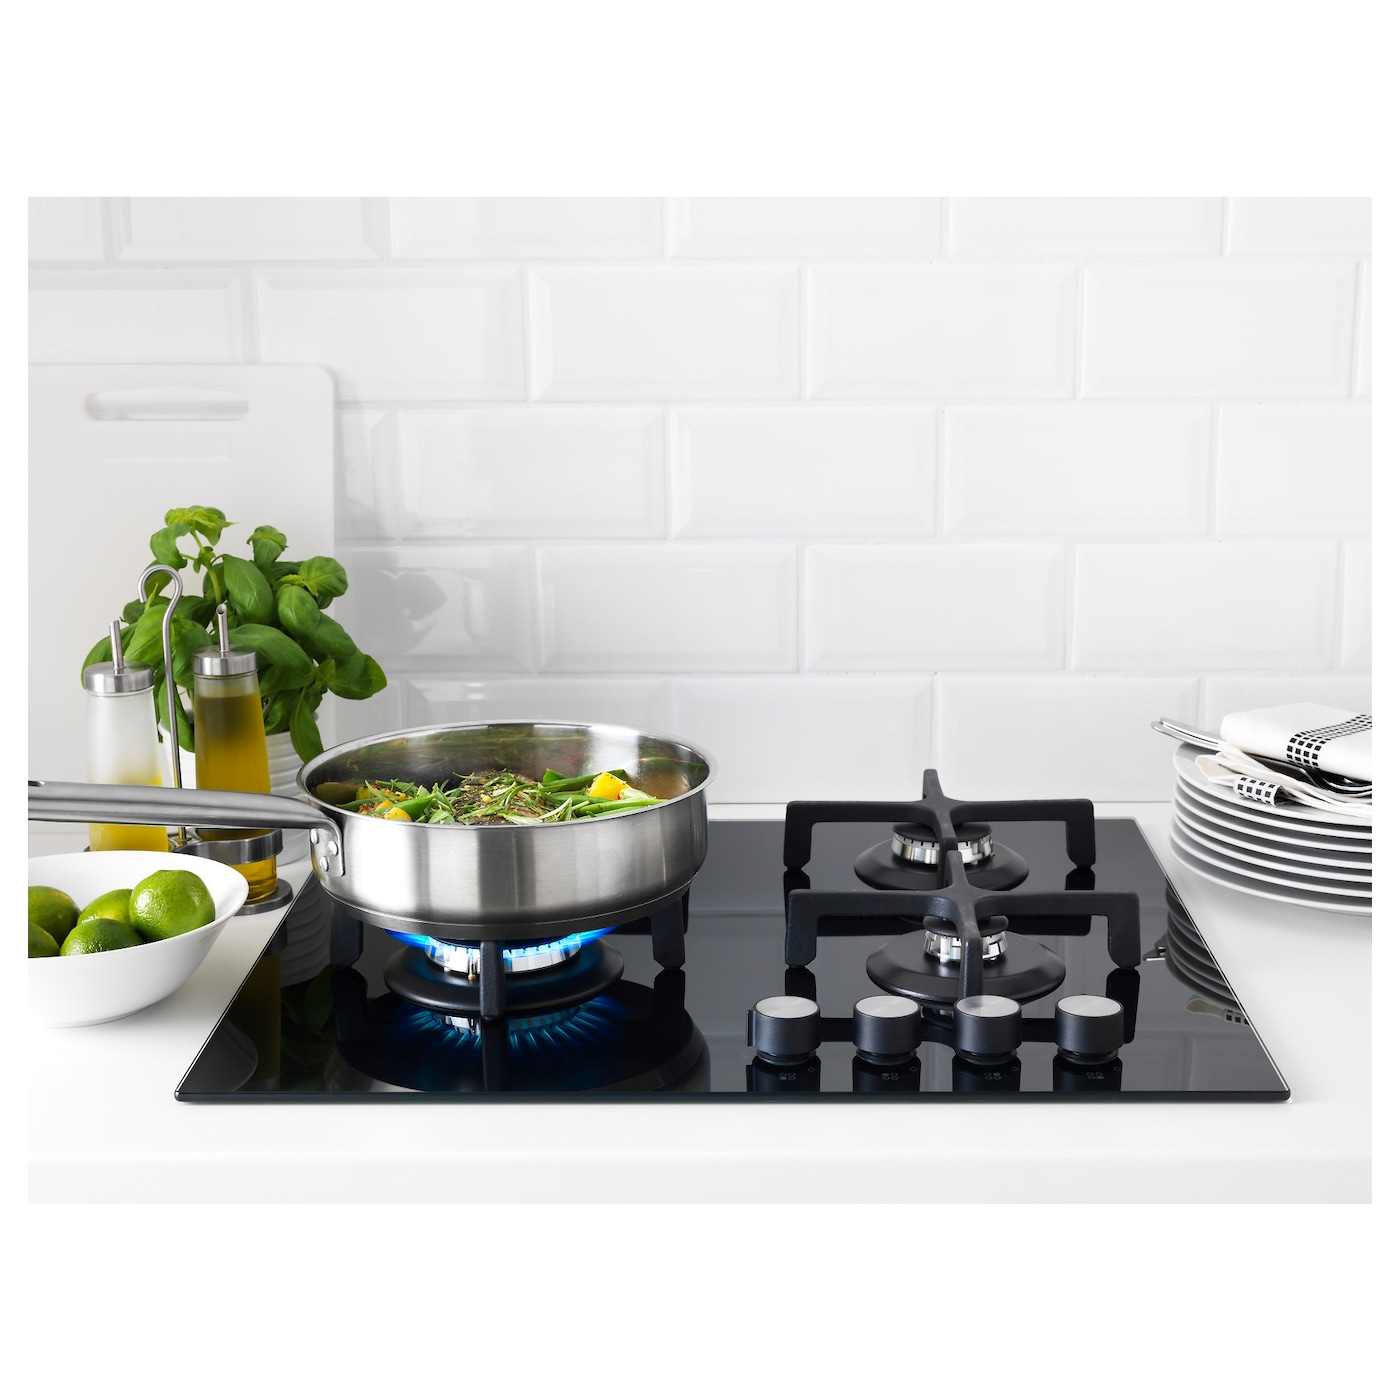 IKEA LIVSGNISTA gas hob 5 year guarantee. Read about the terms in the guarantee brochure.